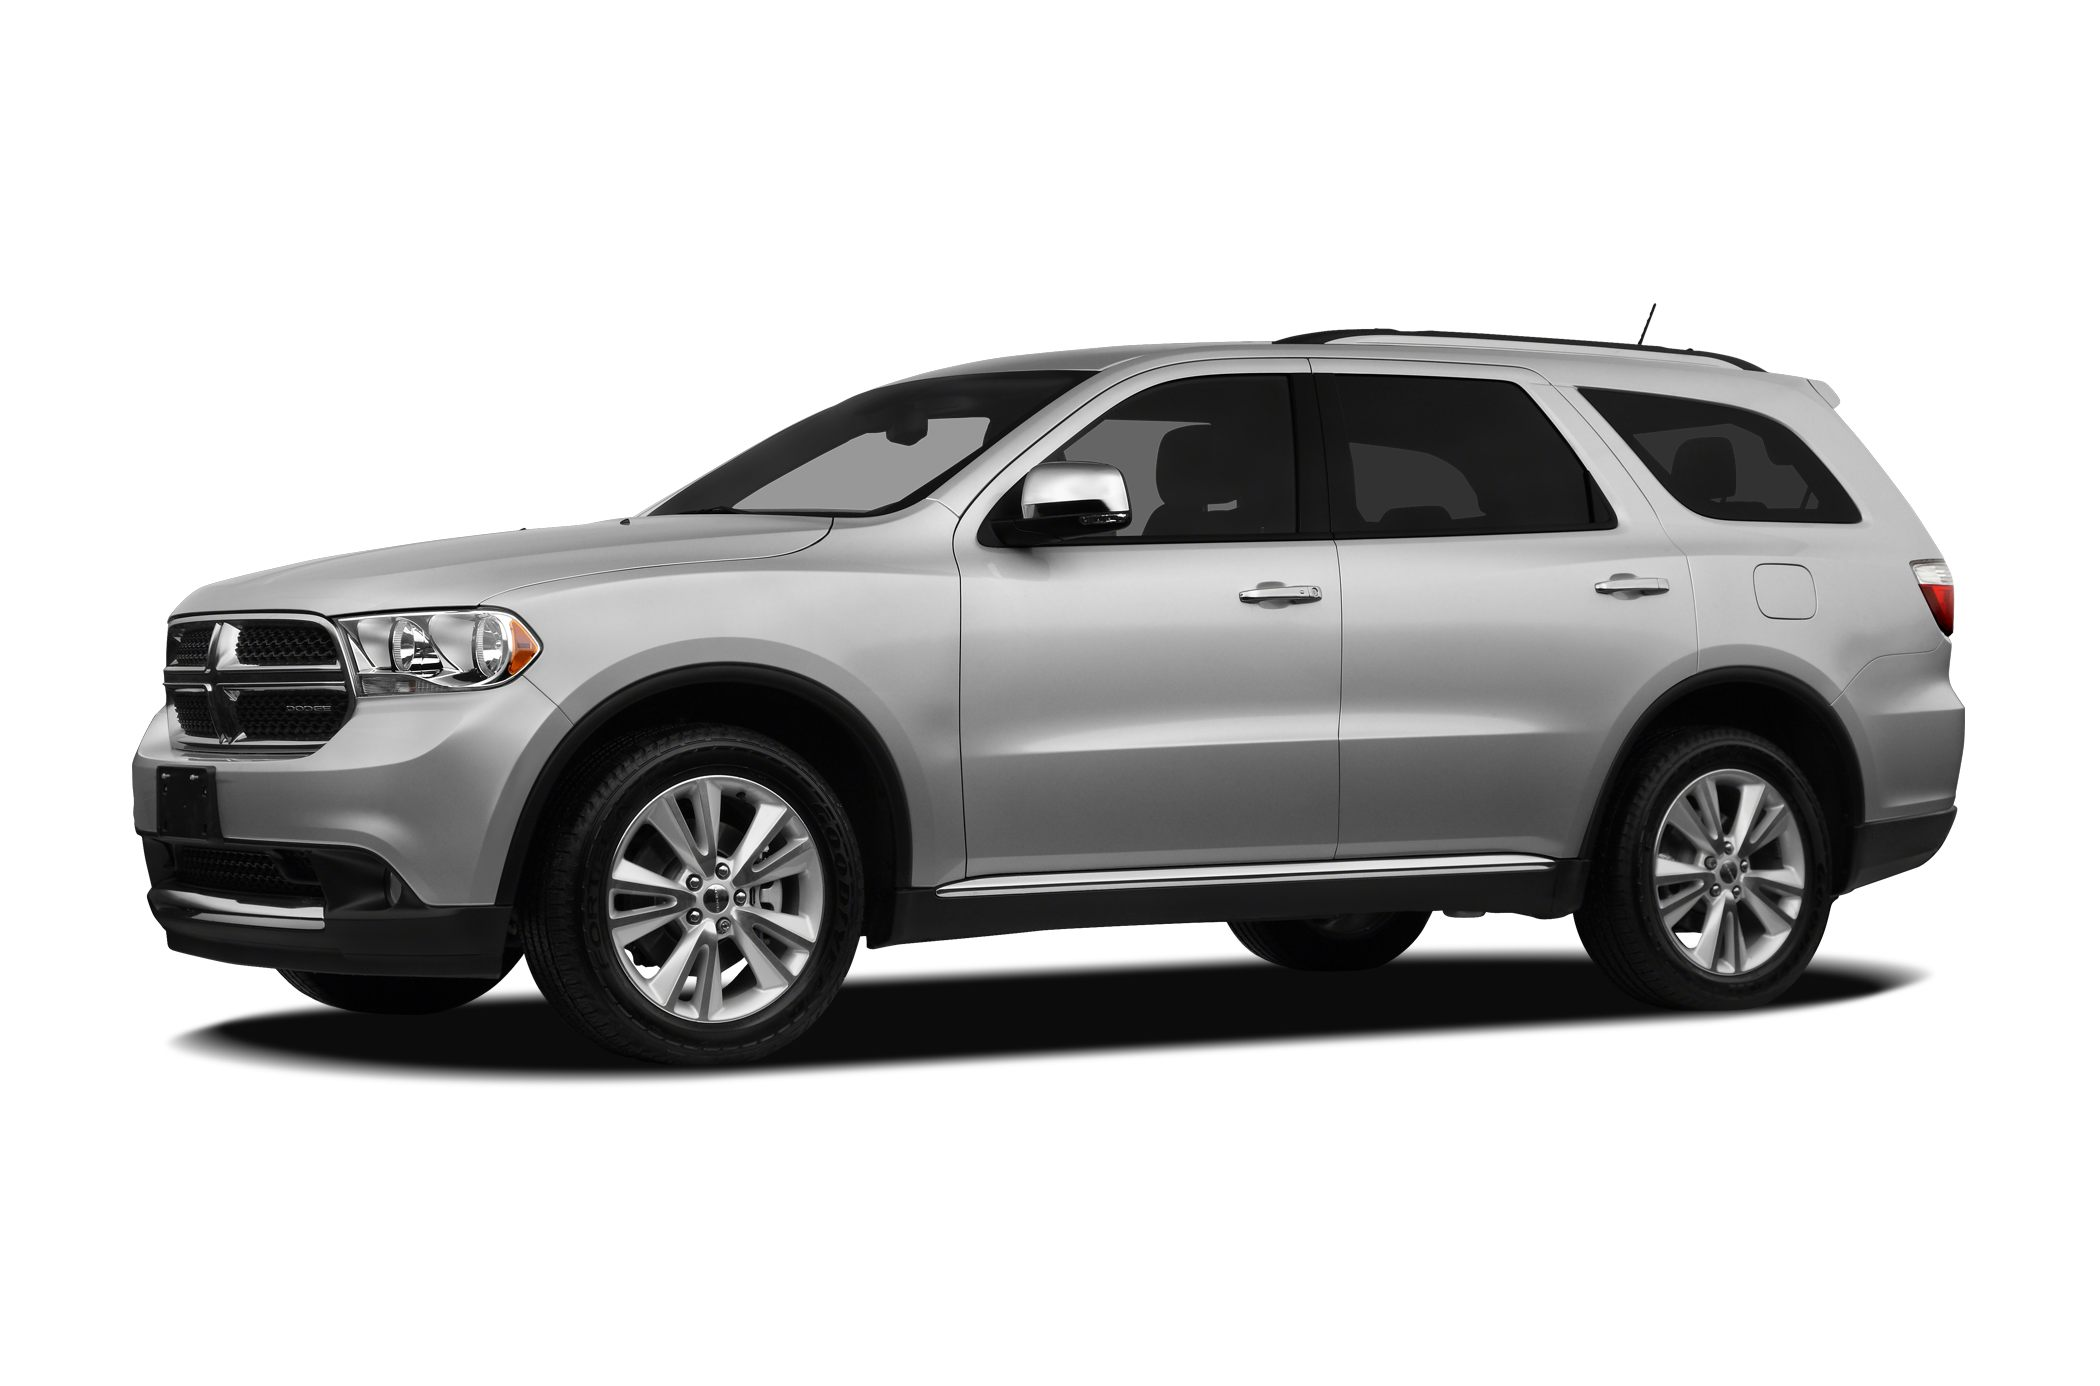 2012 Dodge Durango SXT SUV for sale in Leesburg for $24,750 with 64,634 miles.